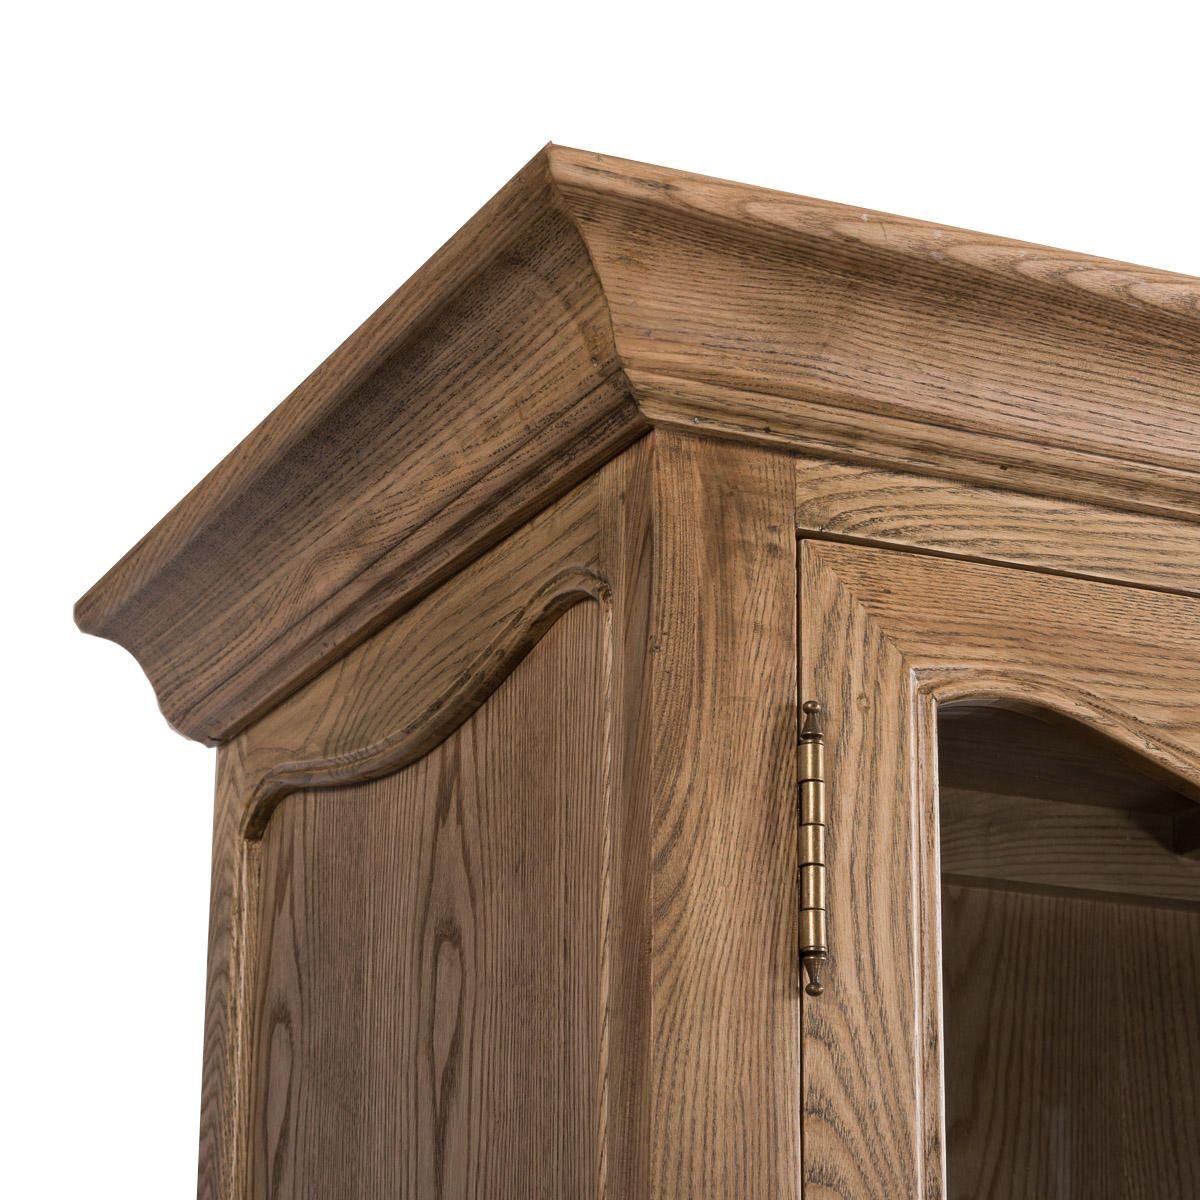 French Provincial Furniture Display Cabinet In Natural Oak